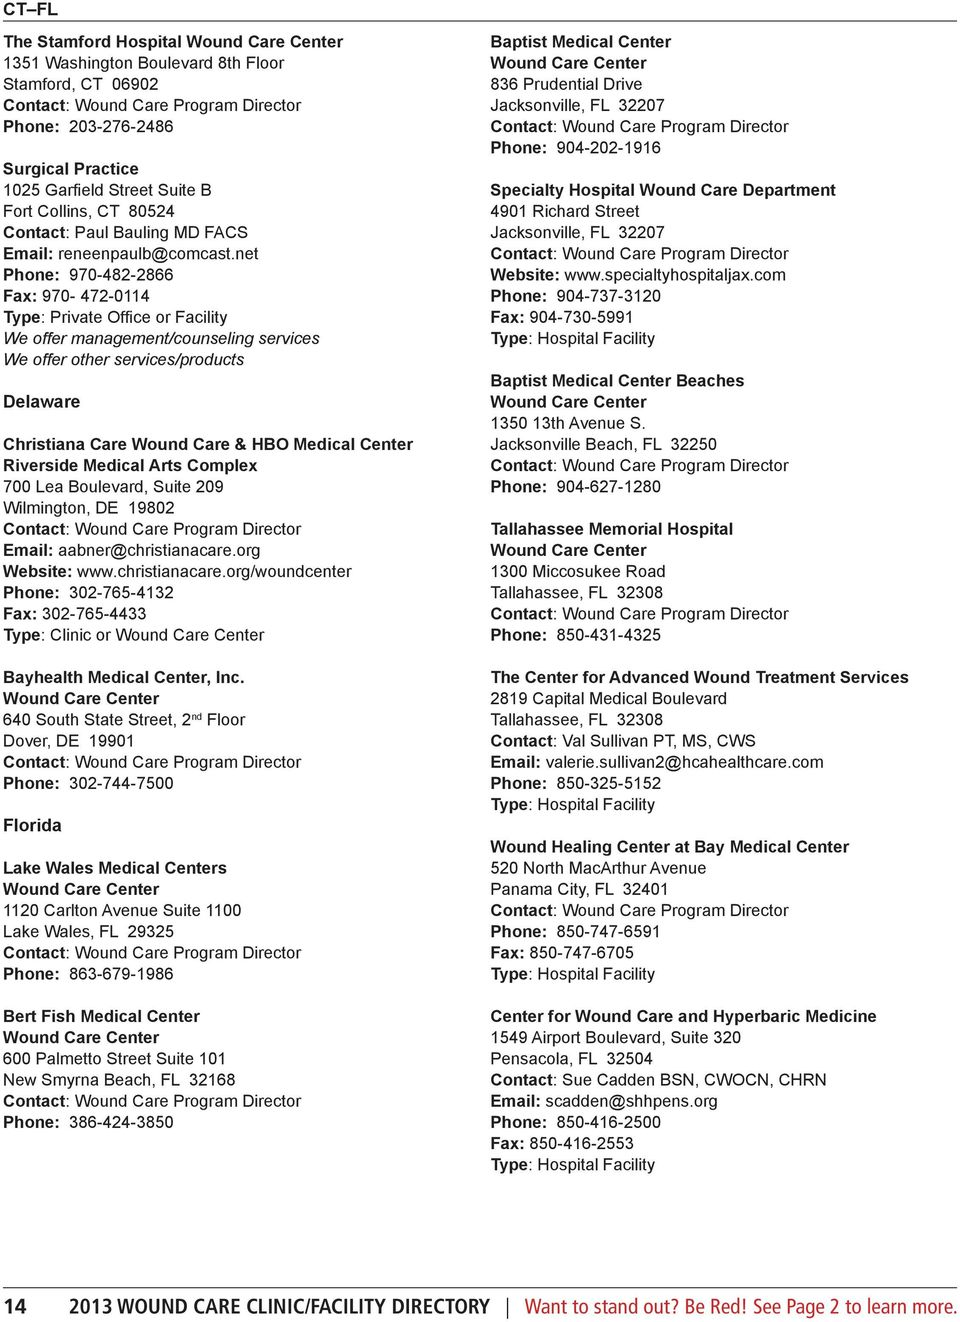 2013 Wound Care Clinic/Facility Directory - PDF